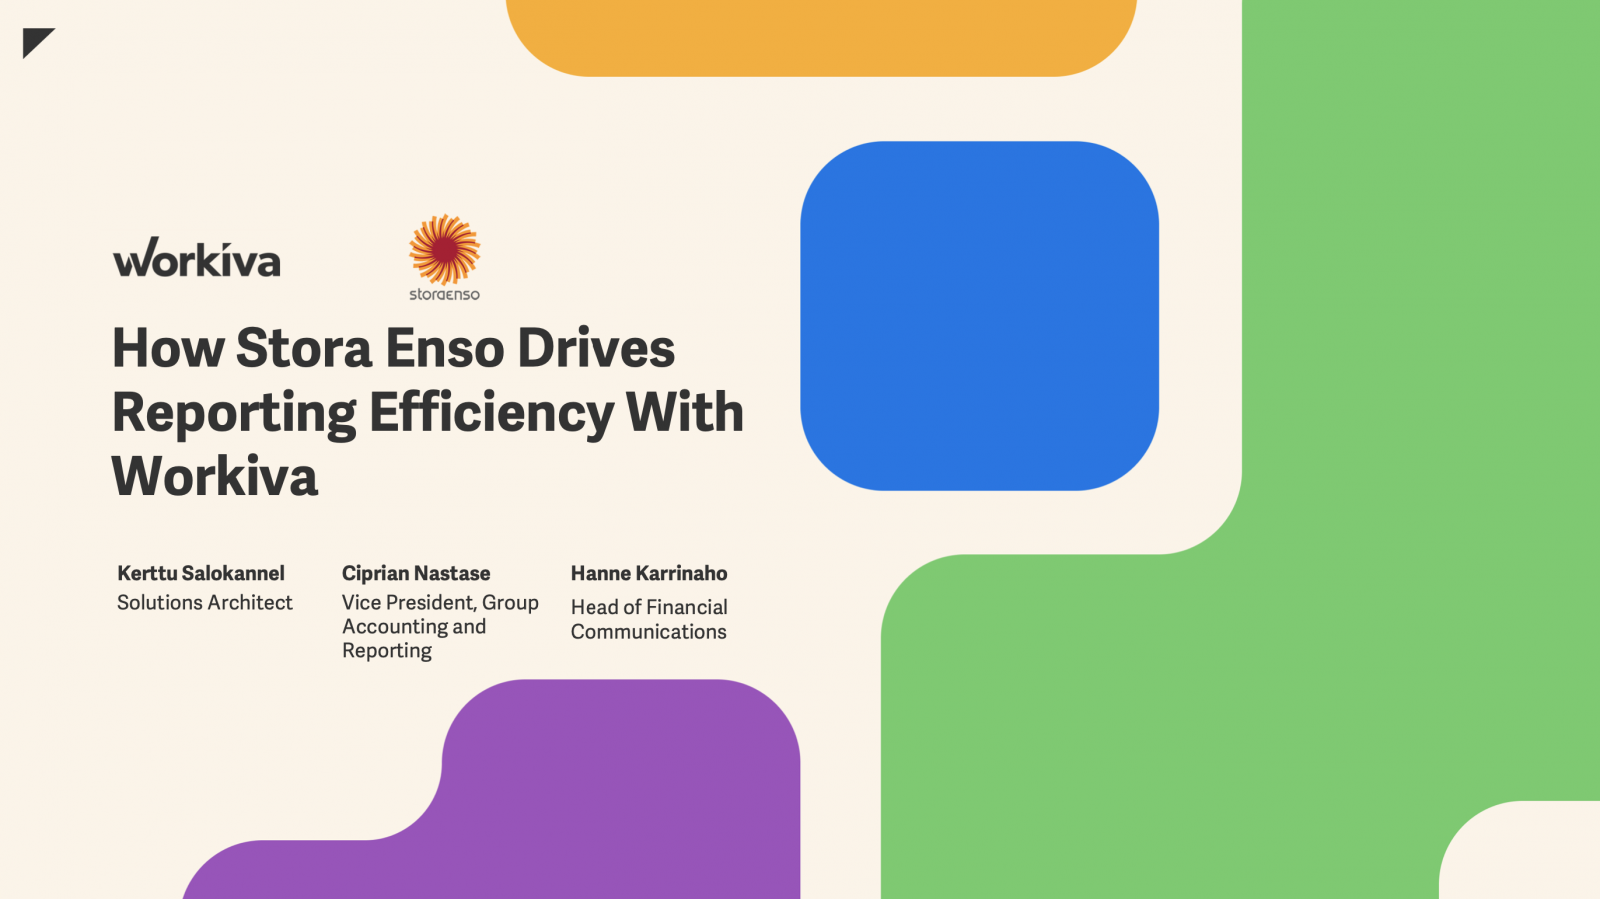 How Stora Enso Drives Reporting Efficiency With Workiva